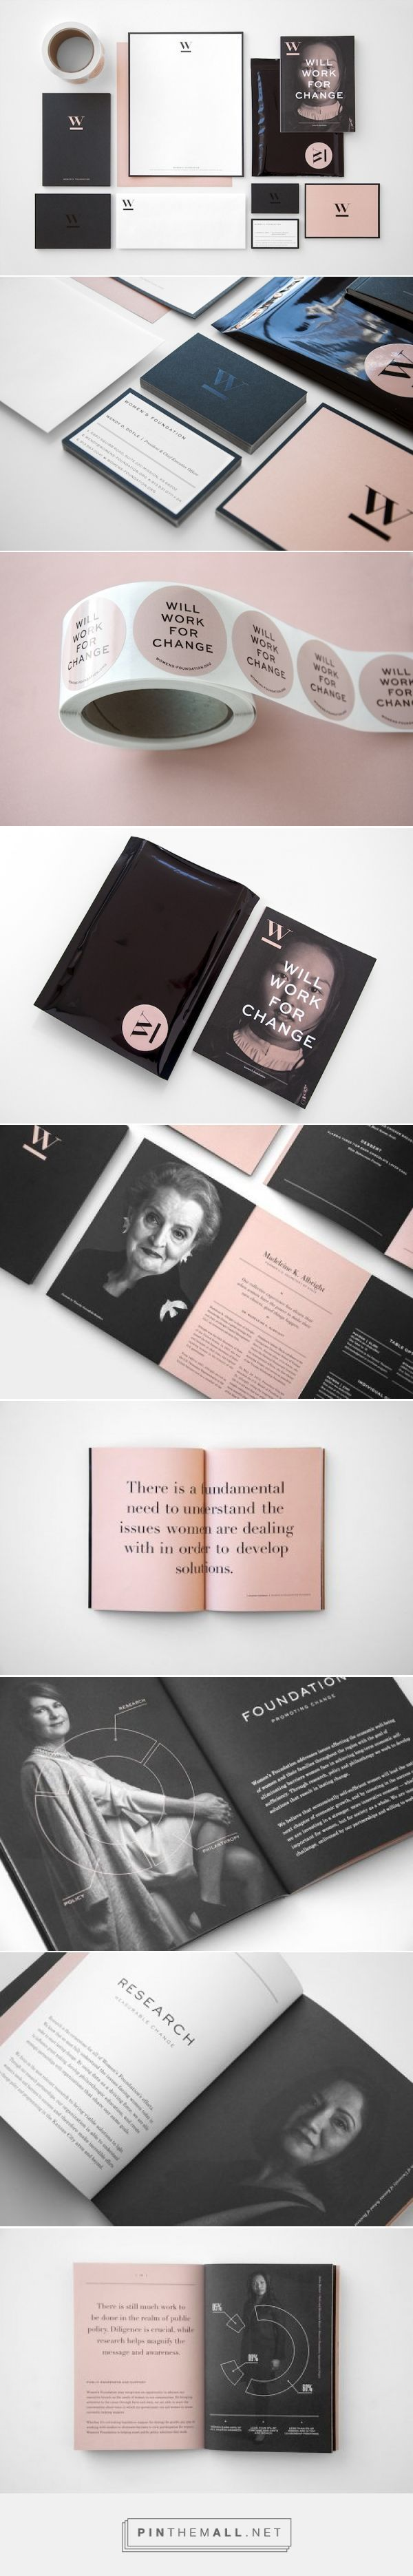 Award-Winning Brand Identity Design: The Women's Foundation - Print Magazine. If you're a user experience professional, listen to The UX Blog Podcast on iTunes.